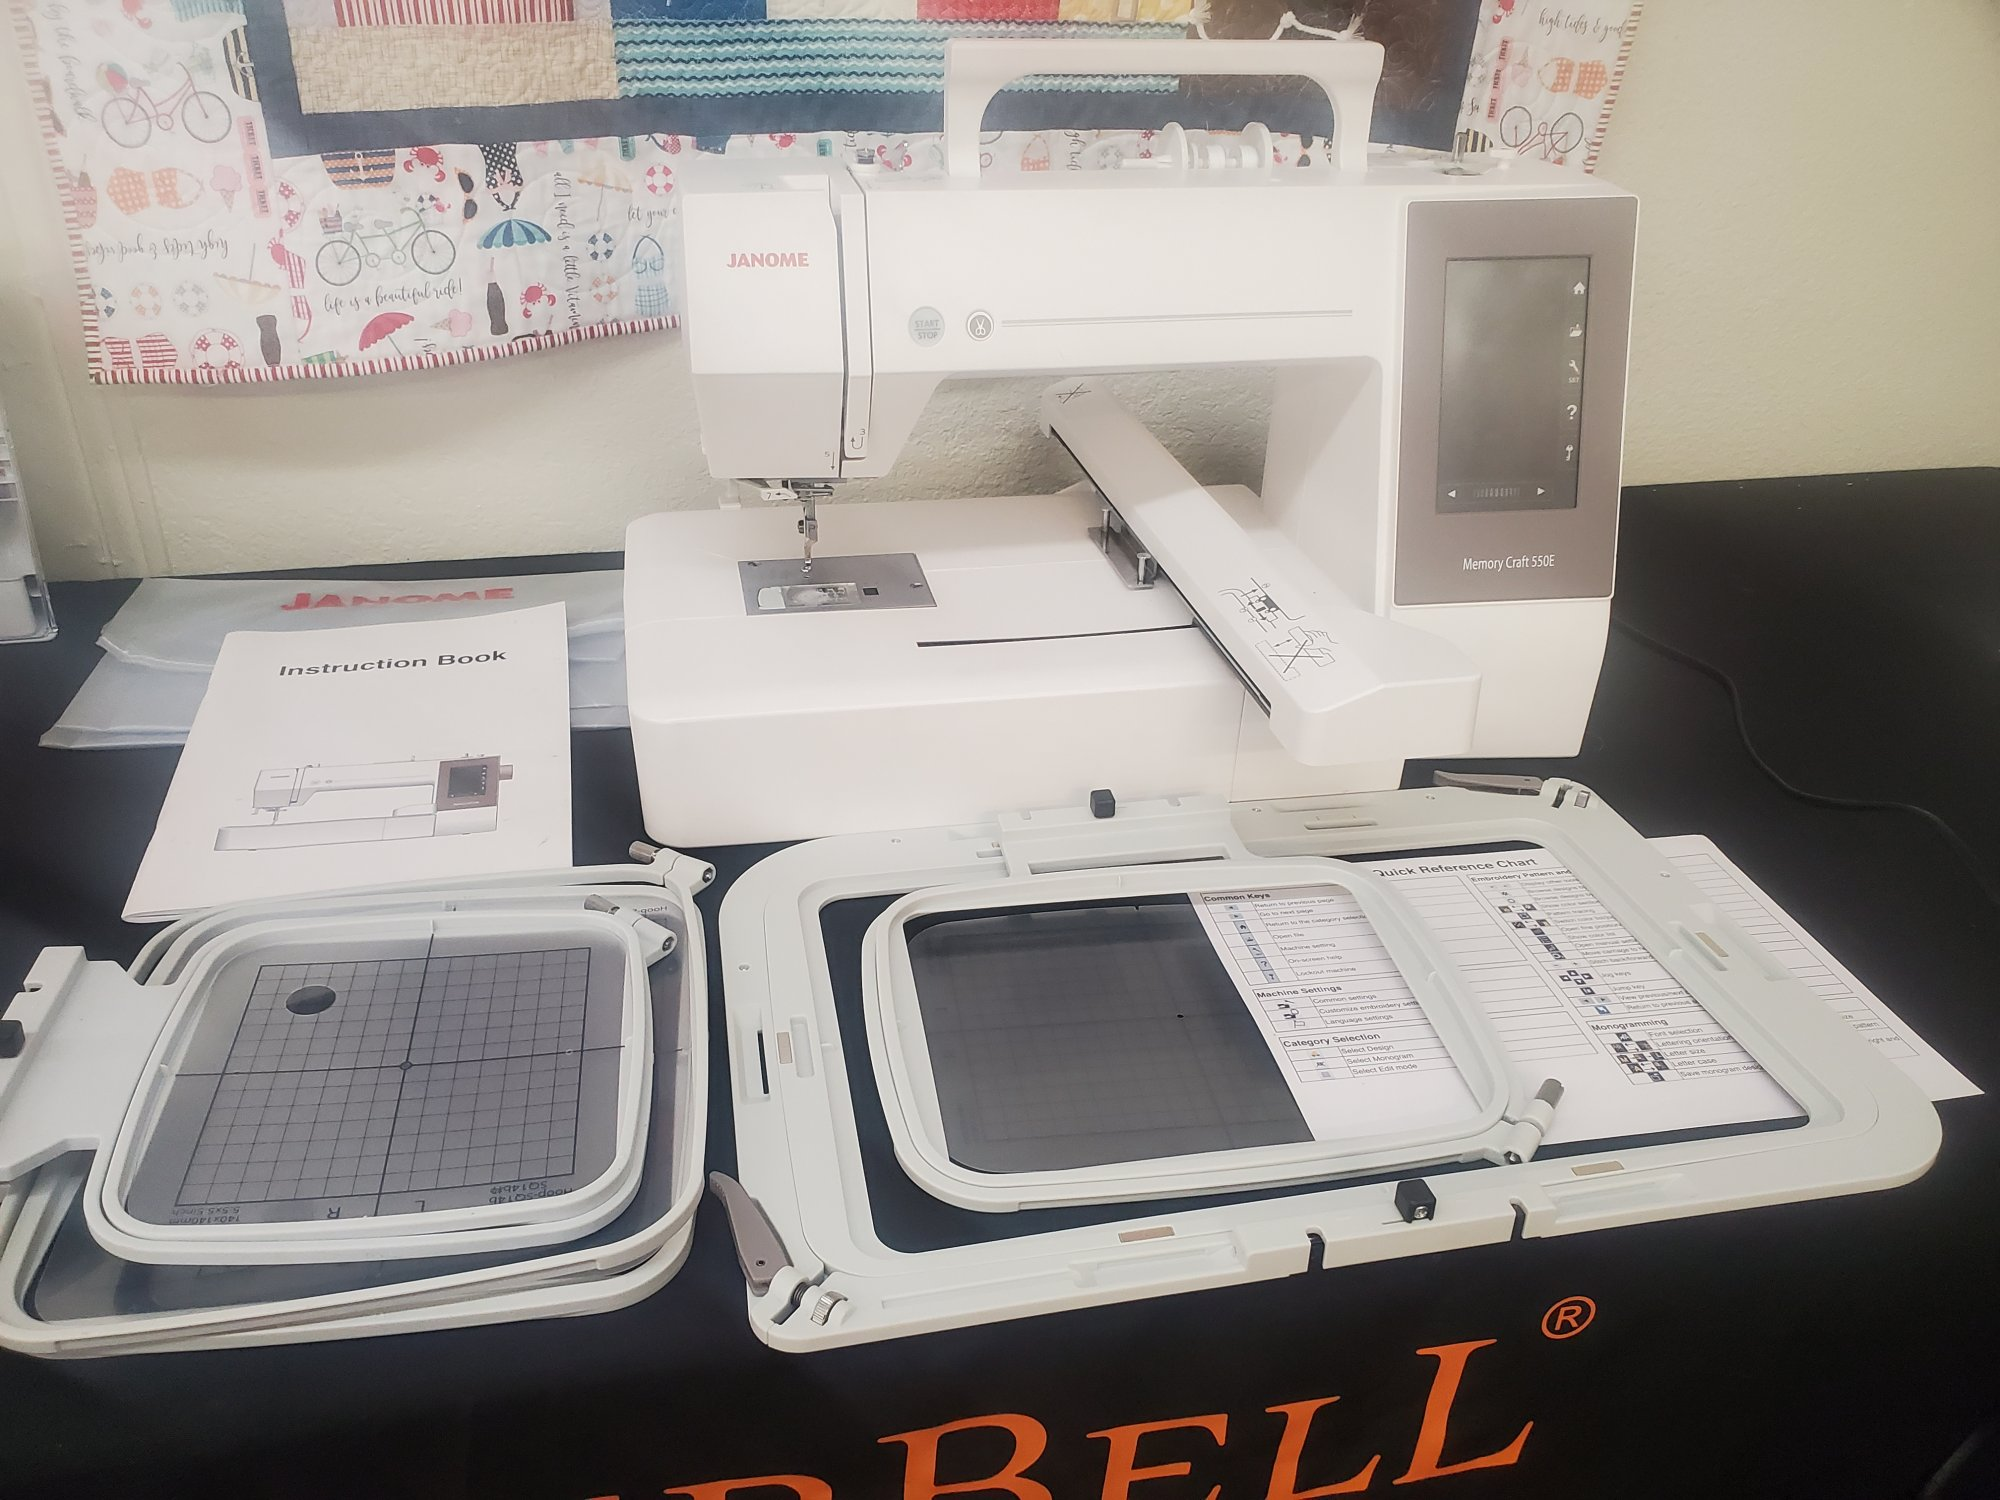 Janome 550e Embroidery Only